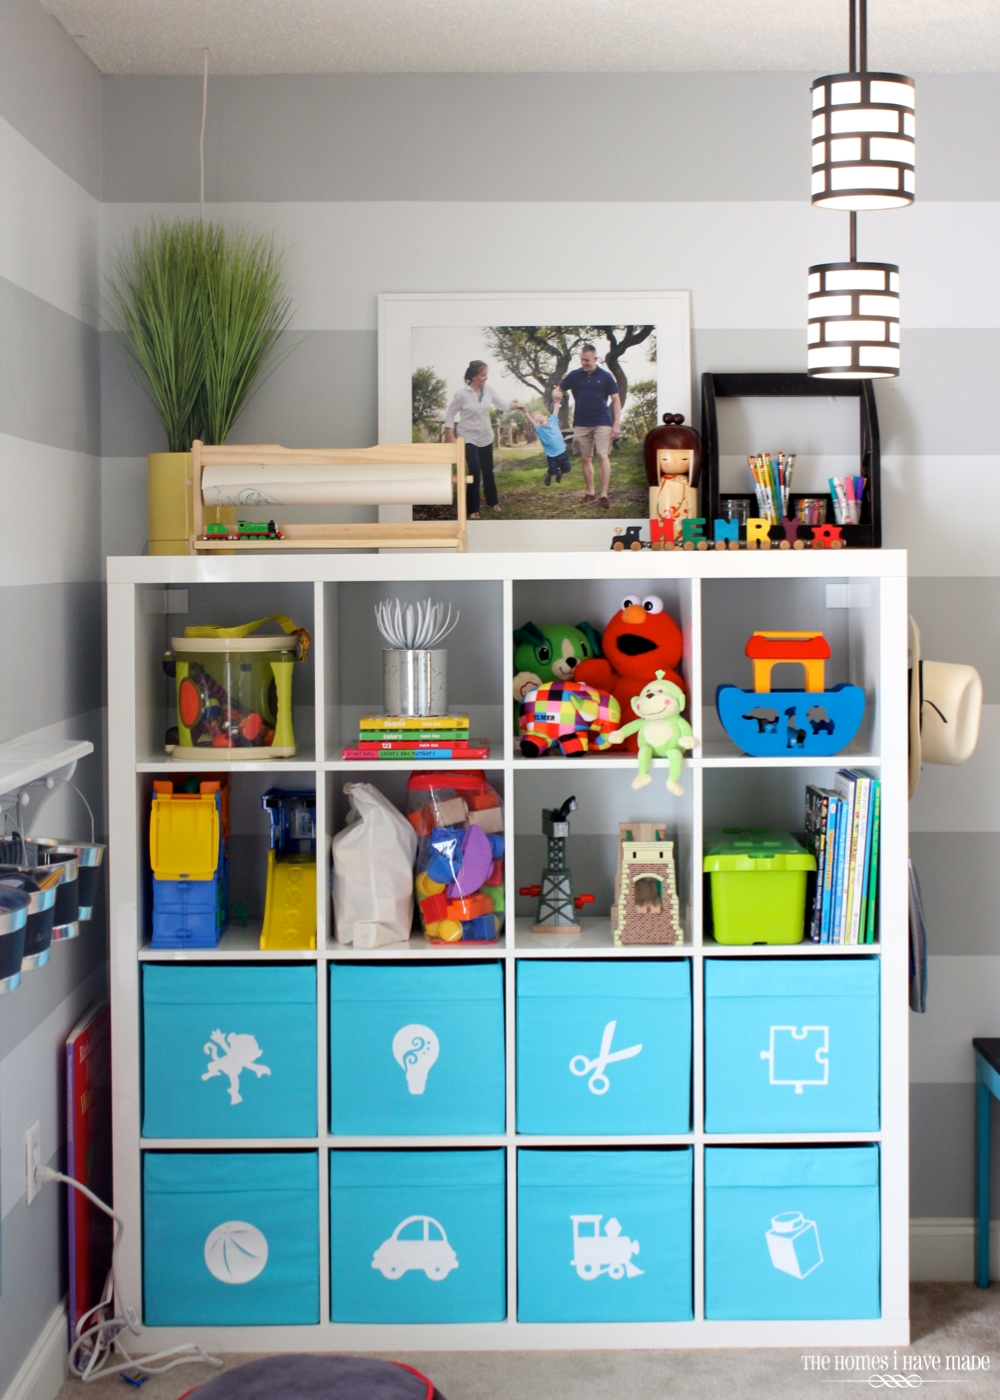 Toy Storage In An Ikea Expedit The Homes I Have Made